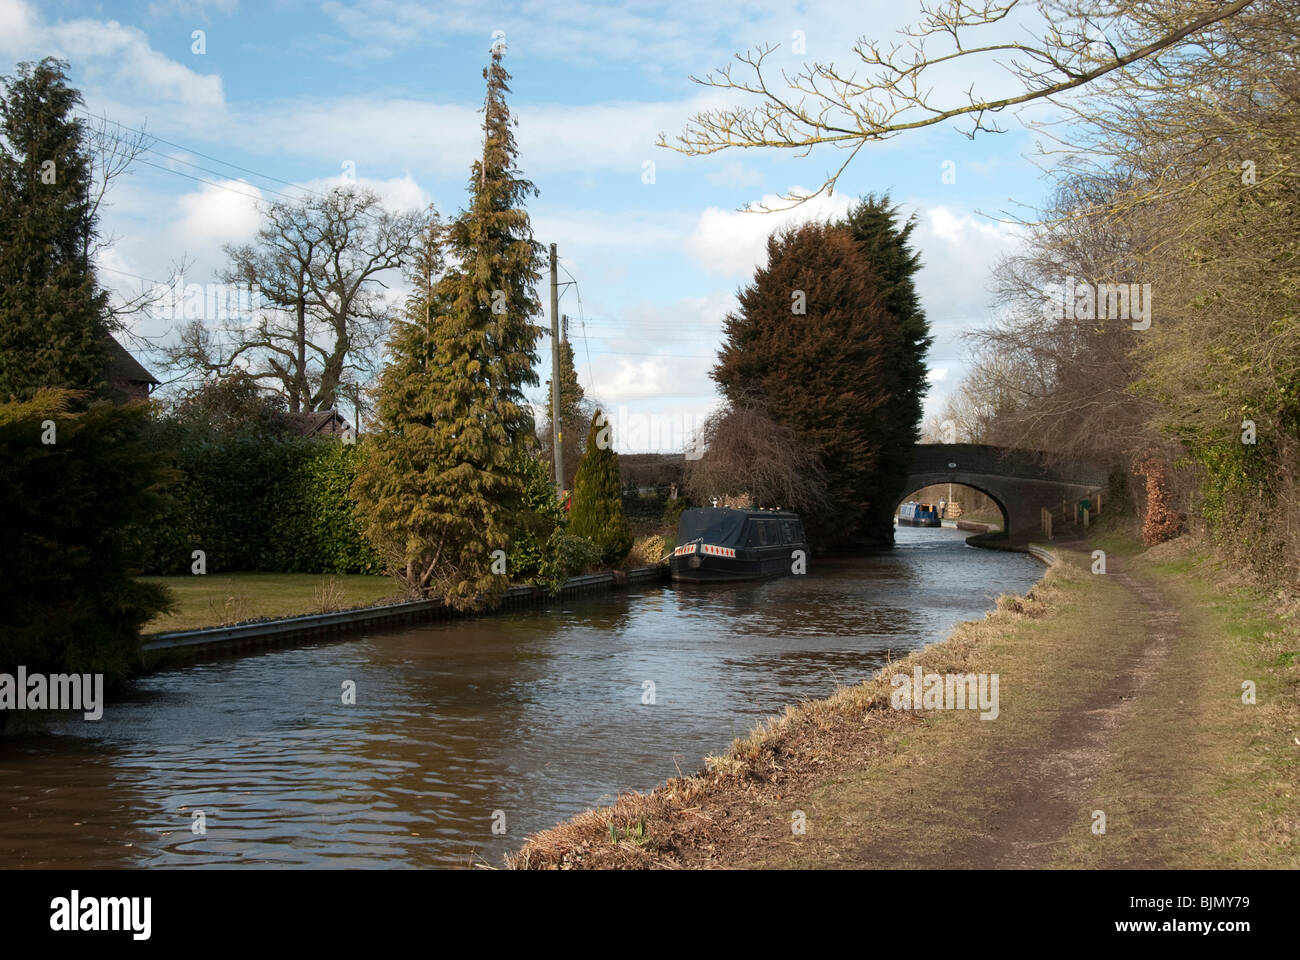 The Llangollen canal near Nantwich in early Spring - Stock Image